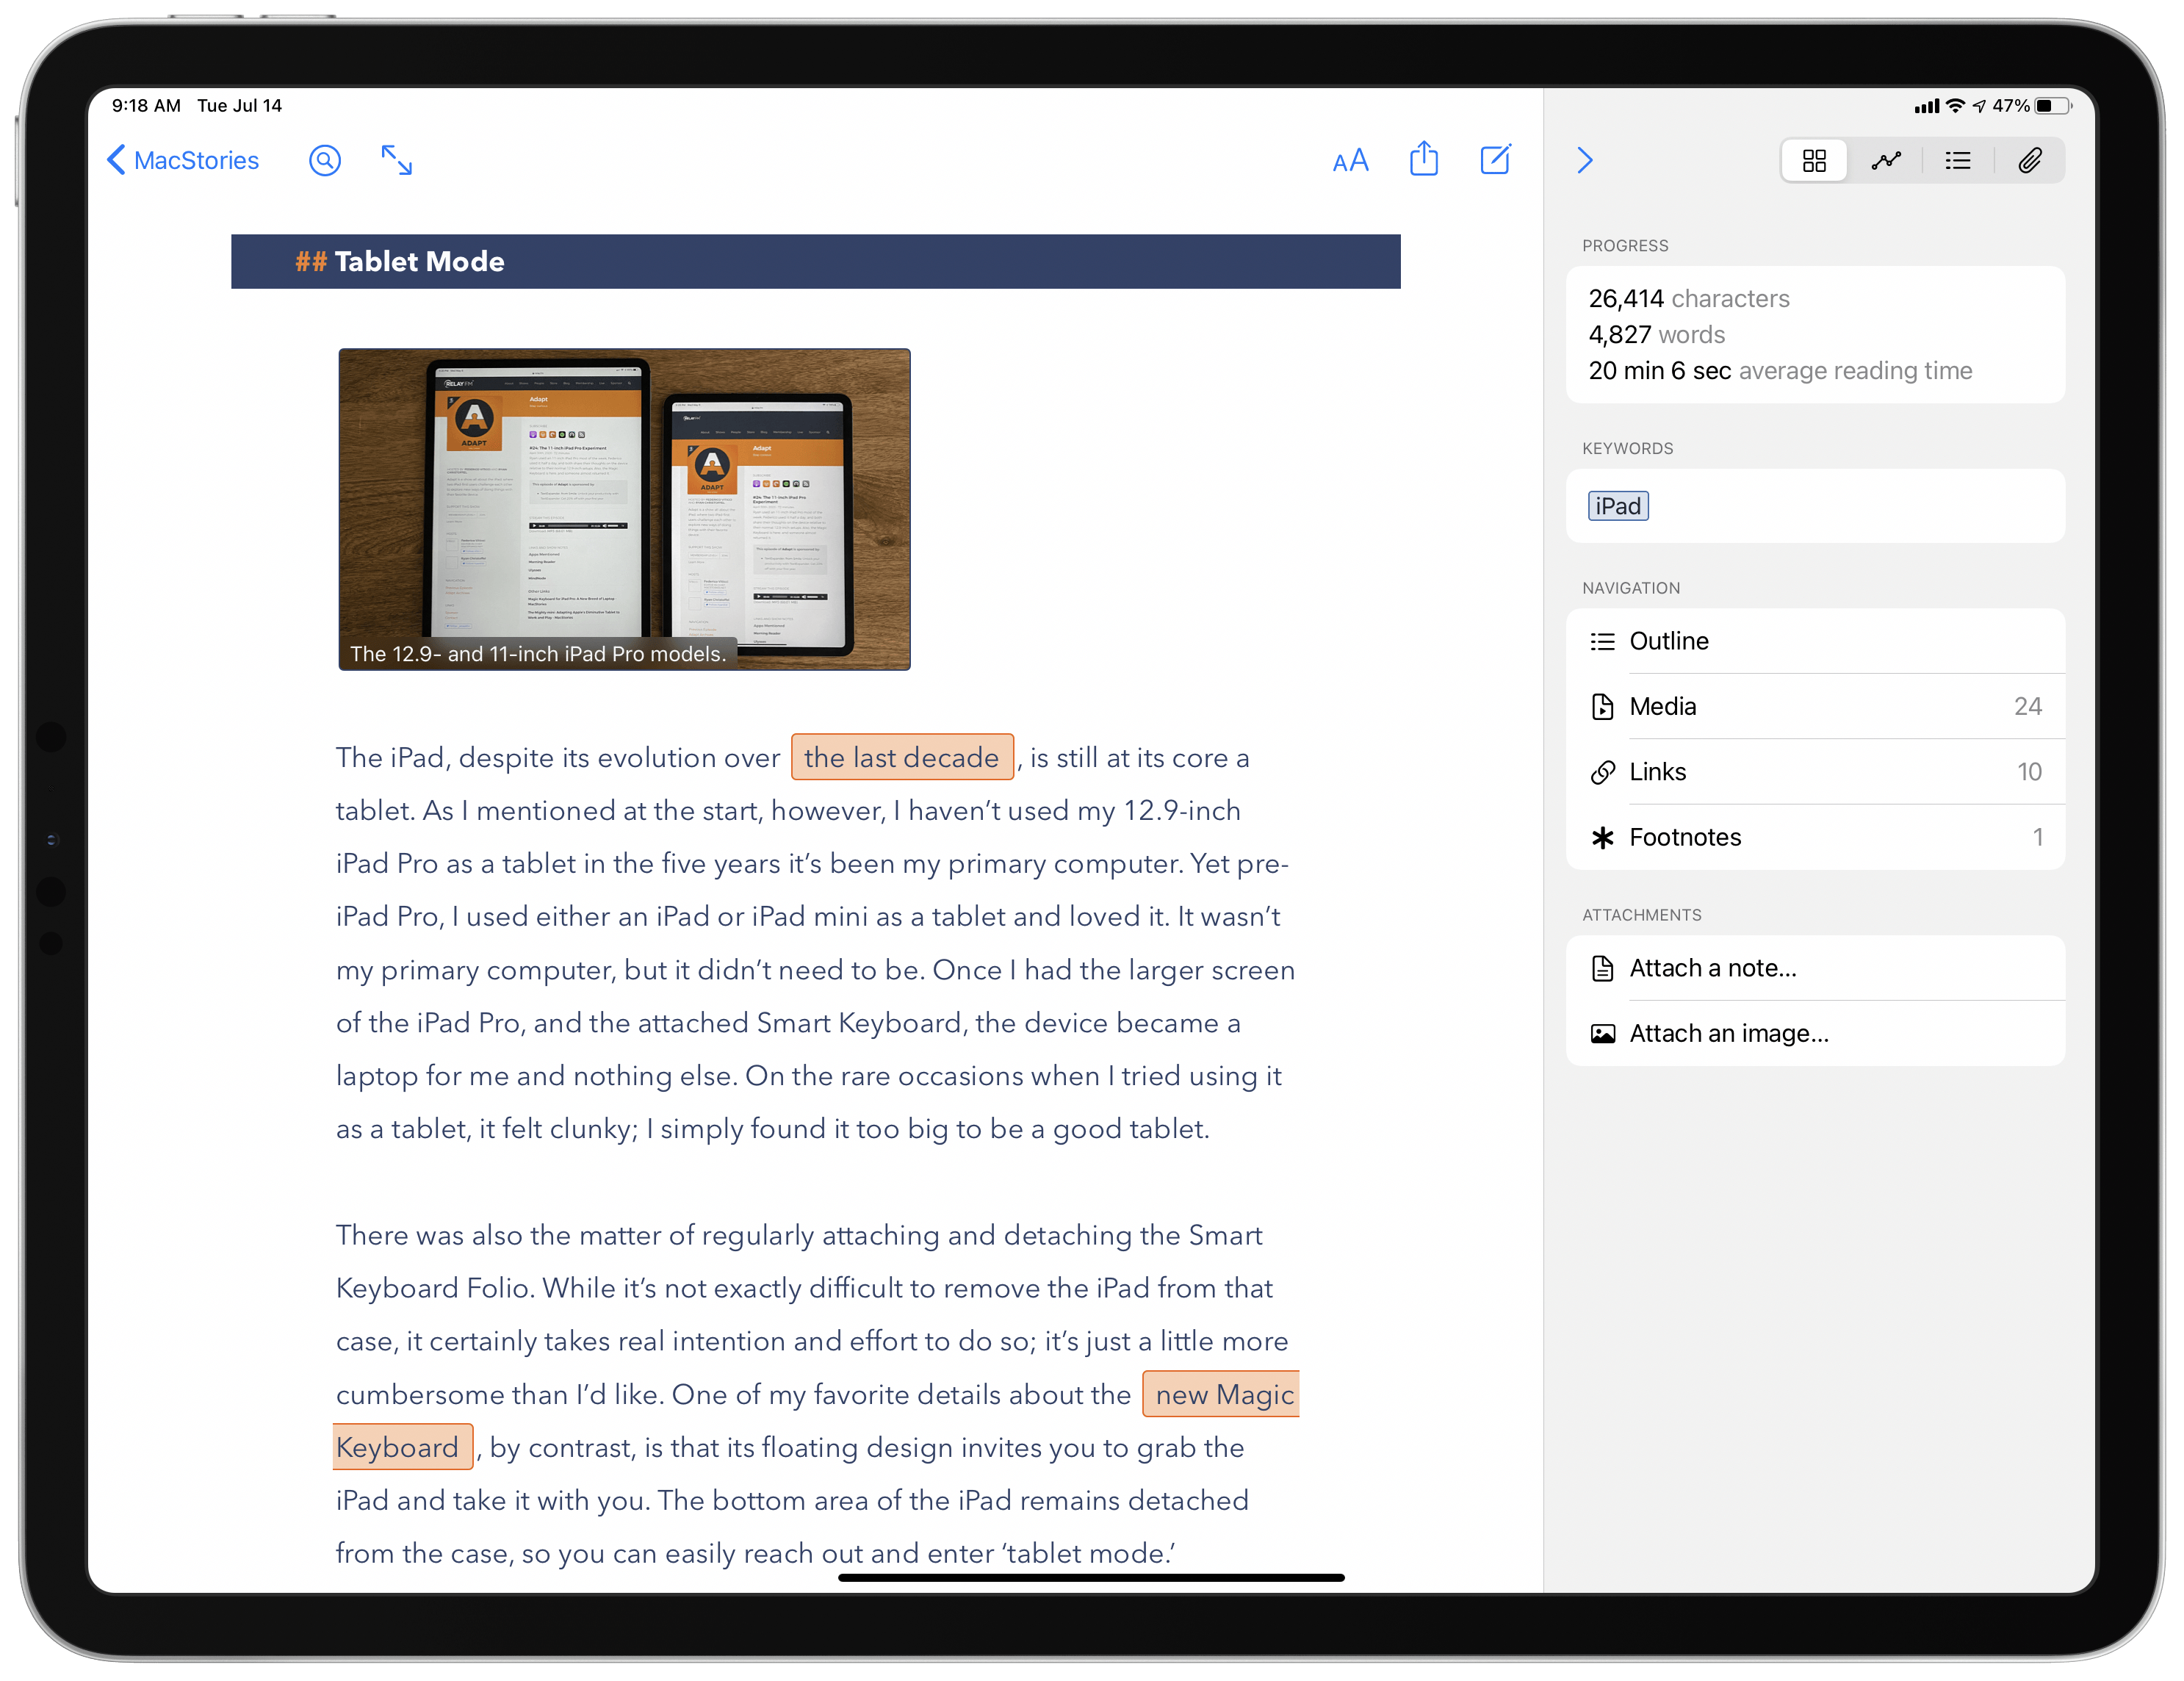 Ulysses 20 Review: New Dashboard Featuring Advanced Grammar and Style Check, Outline, and Much More